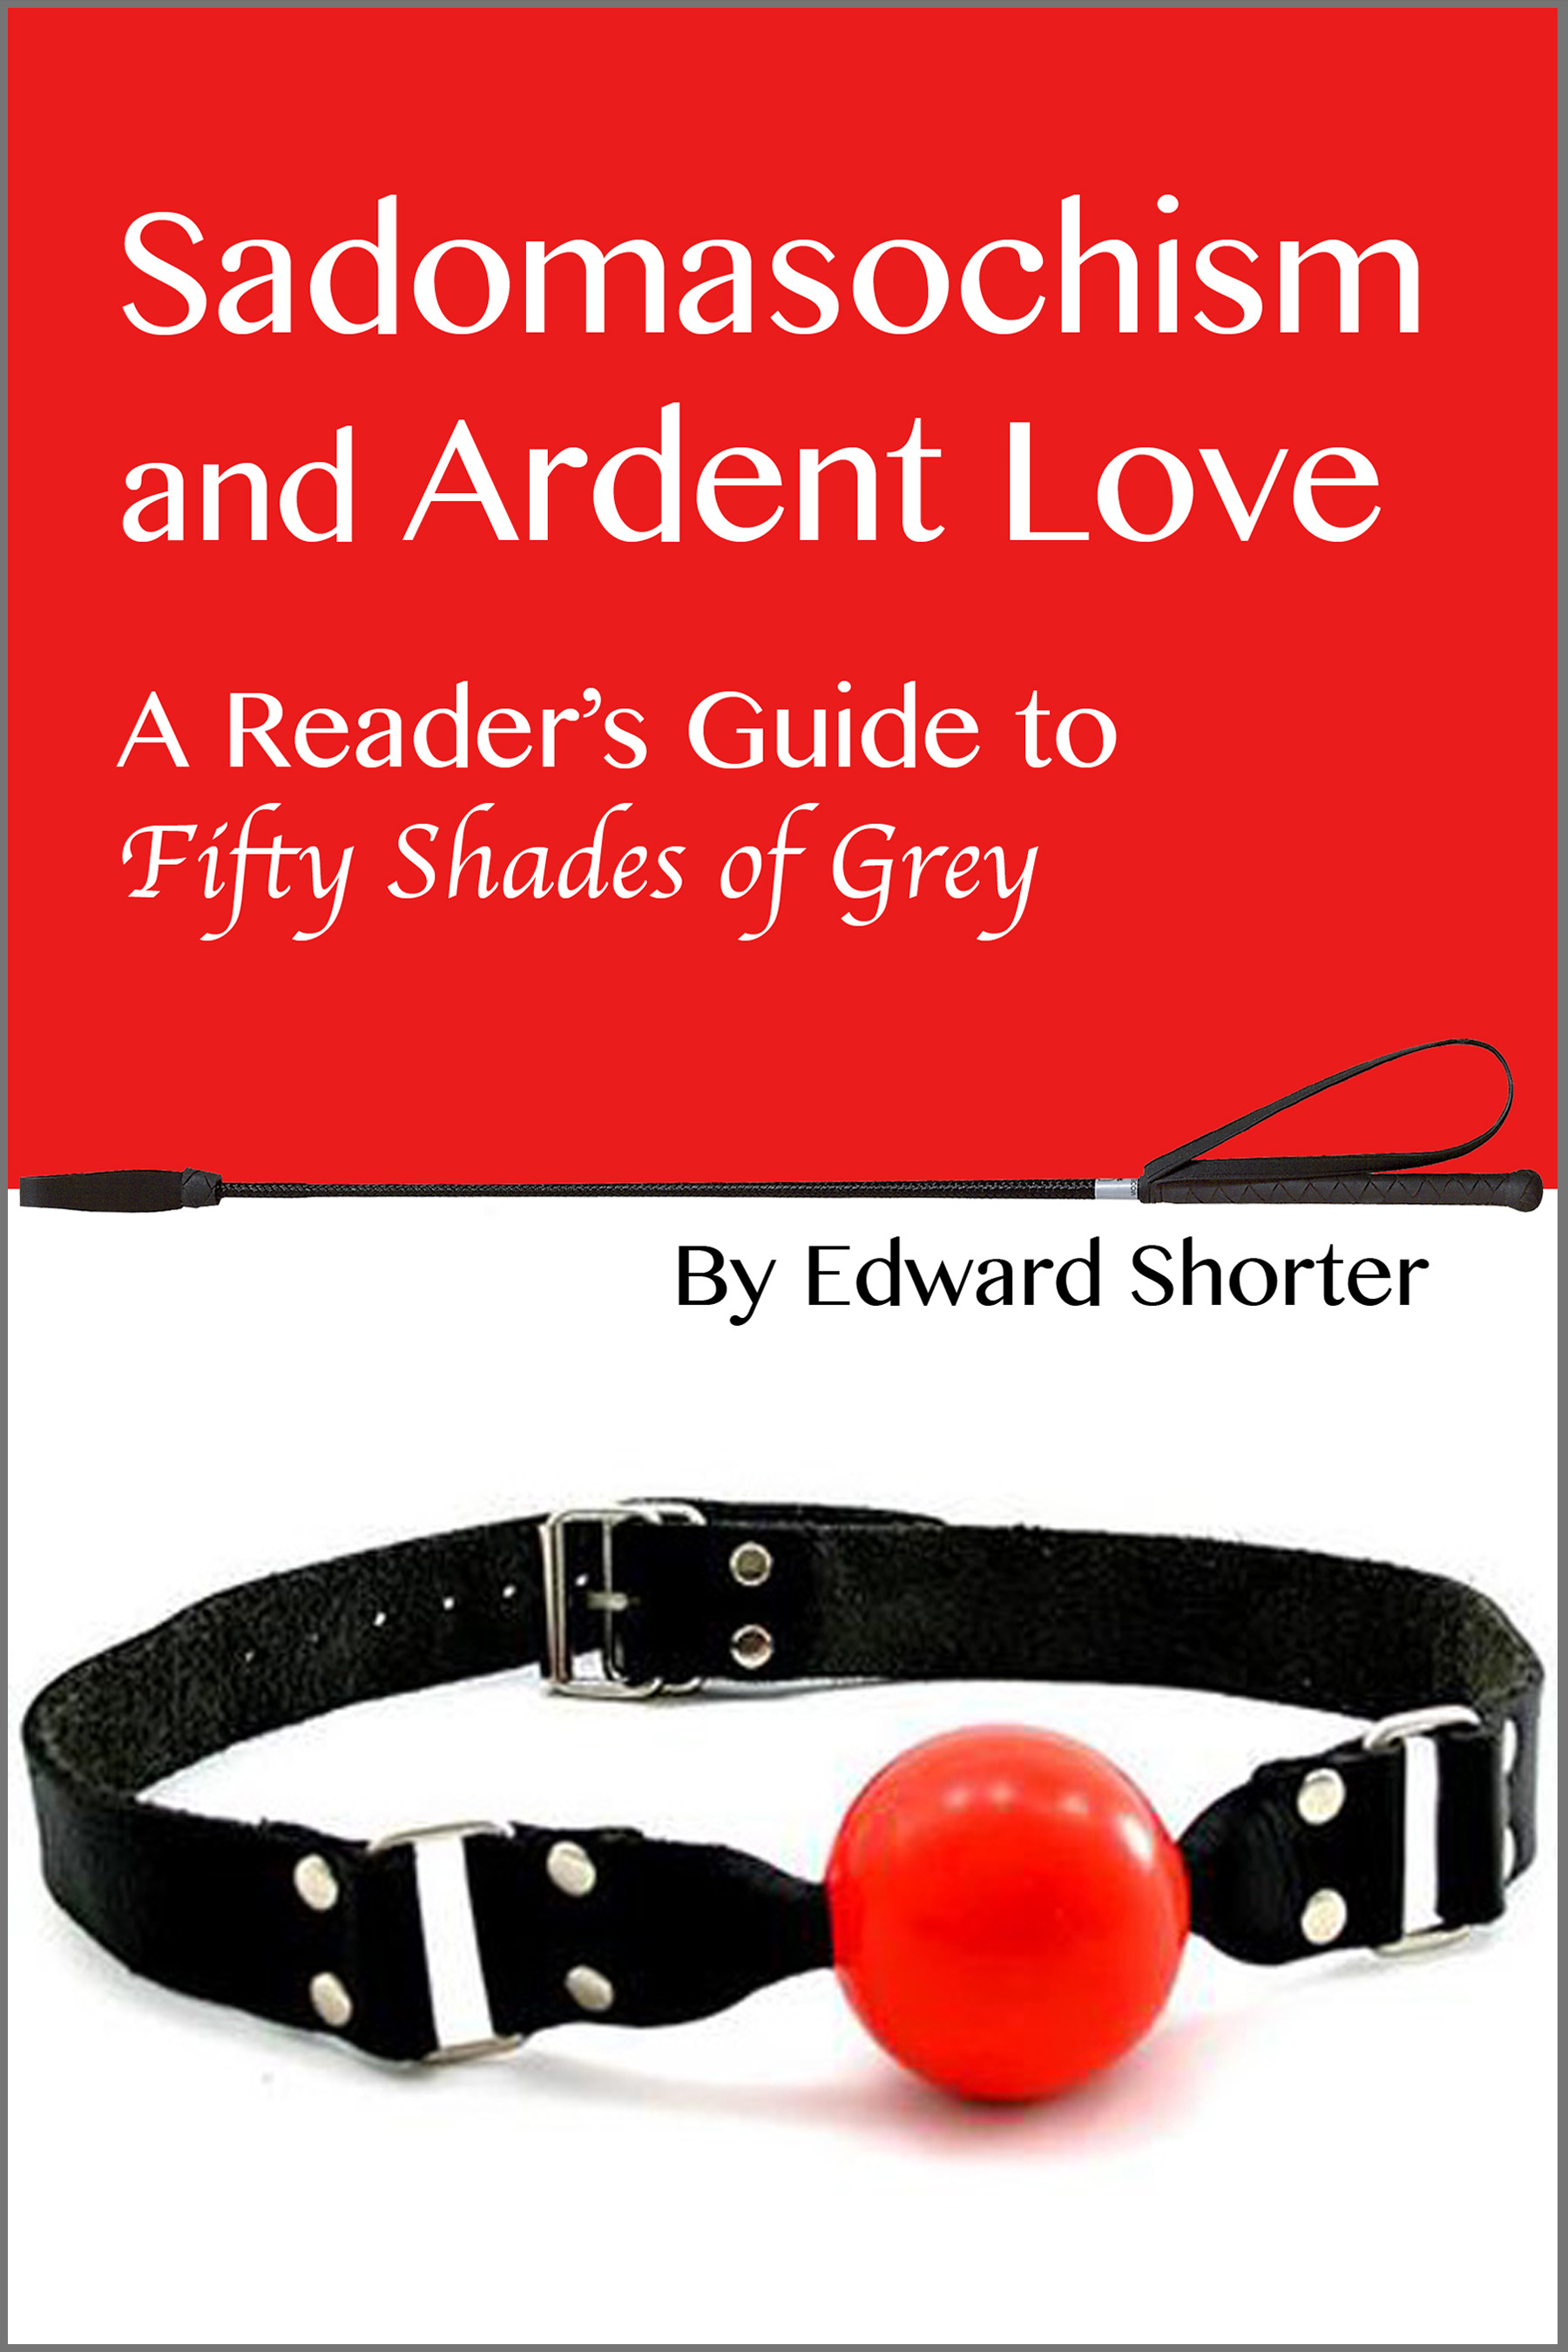 Sadomasochism and Ardent Love: A Reader's Guide to Fifty Shades of Grey By: Edward Shorter